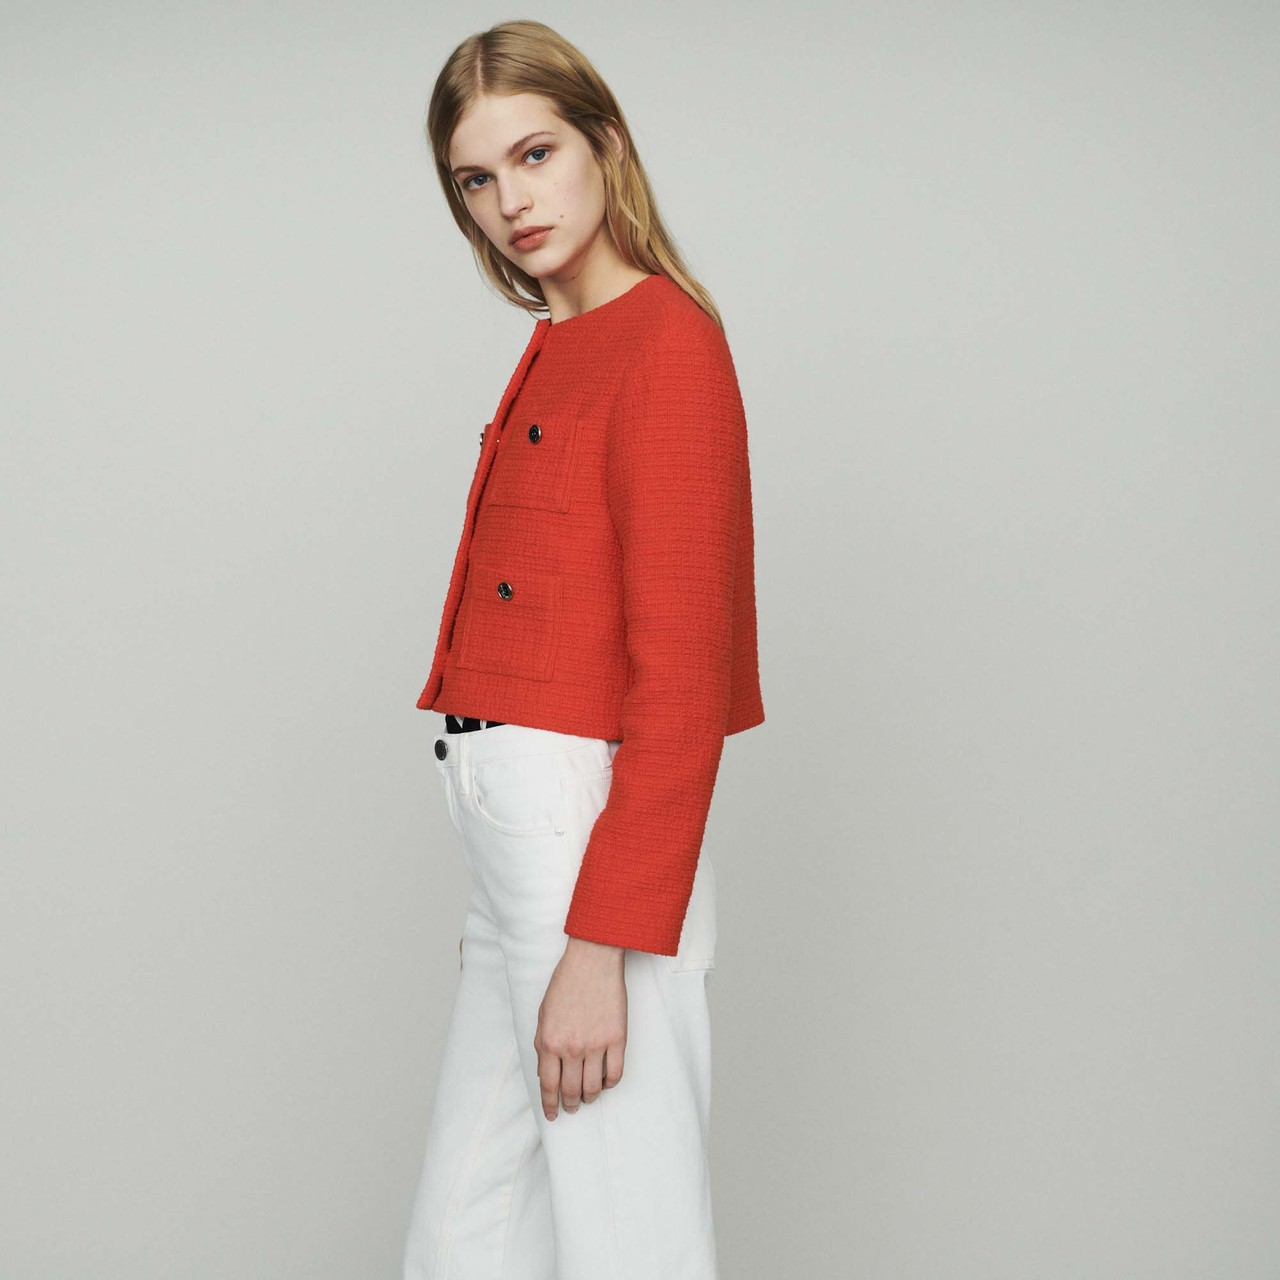 Cropped Tweet Jacket - Red